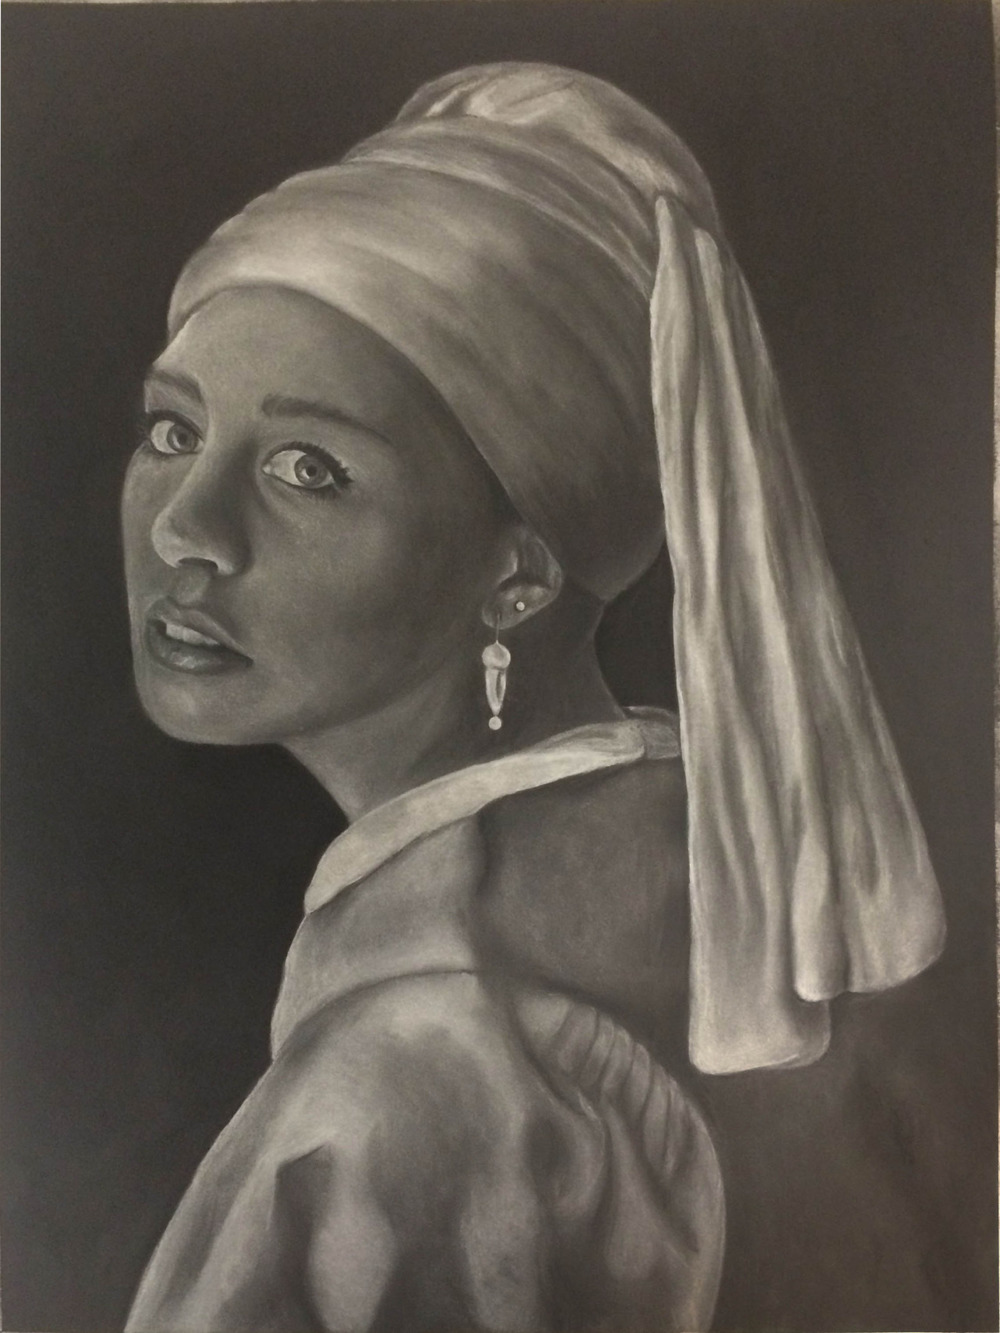 The [Other] Girl with the Pearl Earring.   White charcoal, 22x30 in. A portrait of myself combined with a famous painting for Drawing II.   I'm not too proud of this one, but I thought I'd post it anyway. First time ever drawing with white charcoal on black paper!